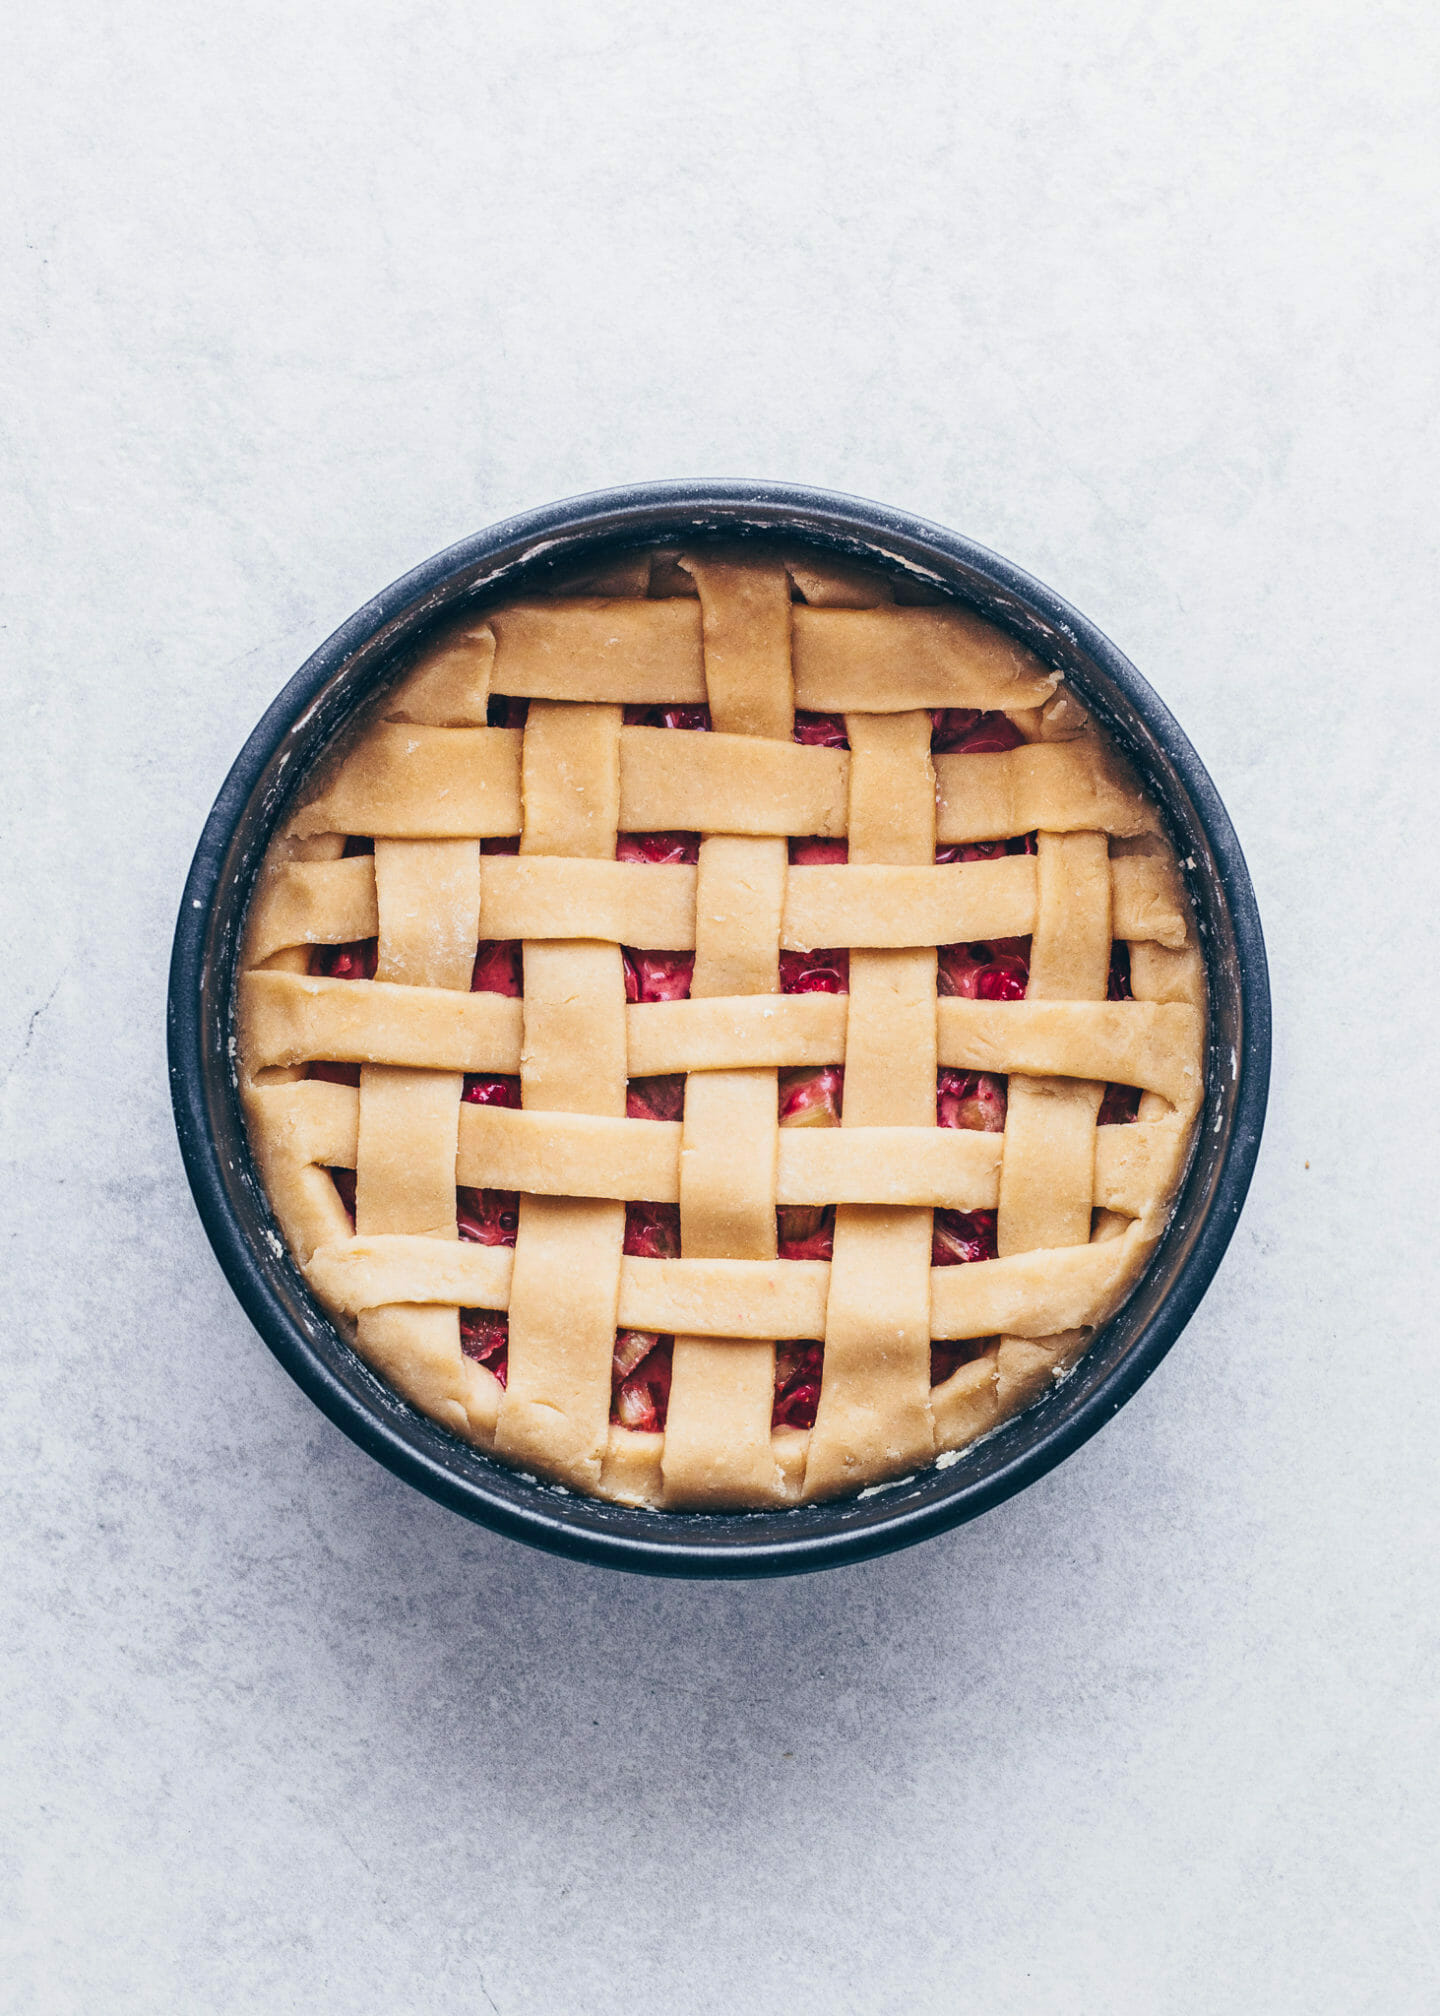 strawberry rhubarb pie with lattice top crust (step-by-step instruction)